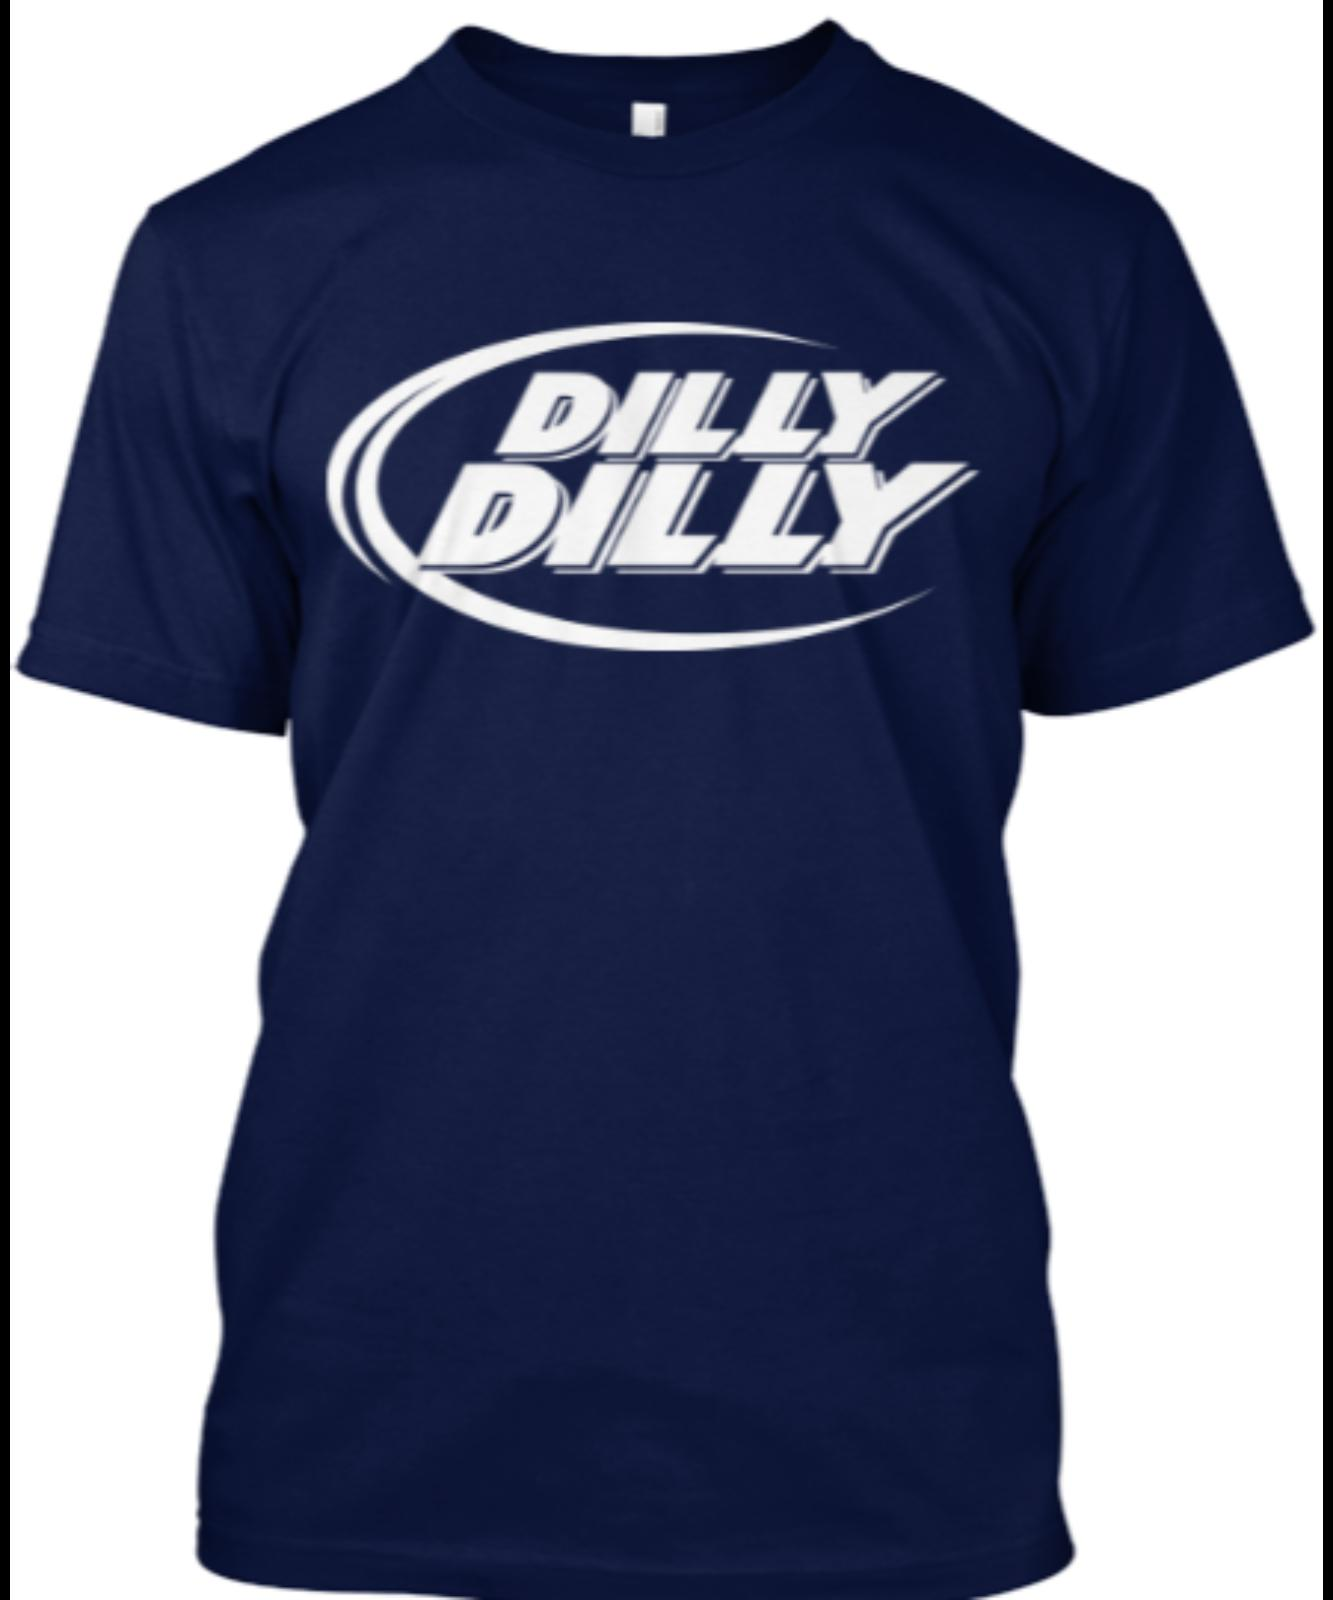 Dilly Dilly Parody Budweiser Bud Light Beer Novelty Funny T Shirt Funny  Unisex Casual Gift T Shirt Making Companies 7 T Shirt From Lukehappy13 98de9e95407